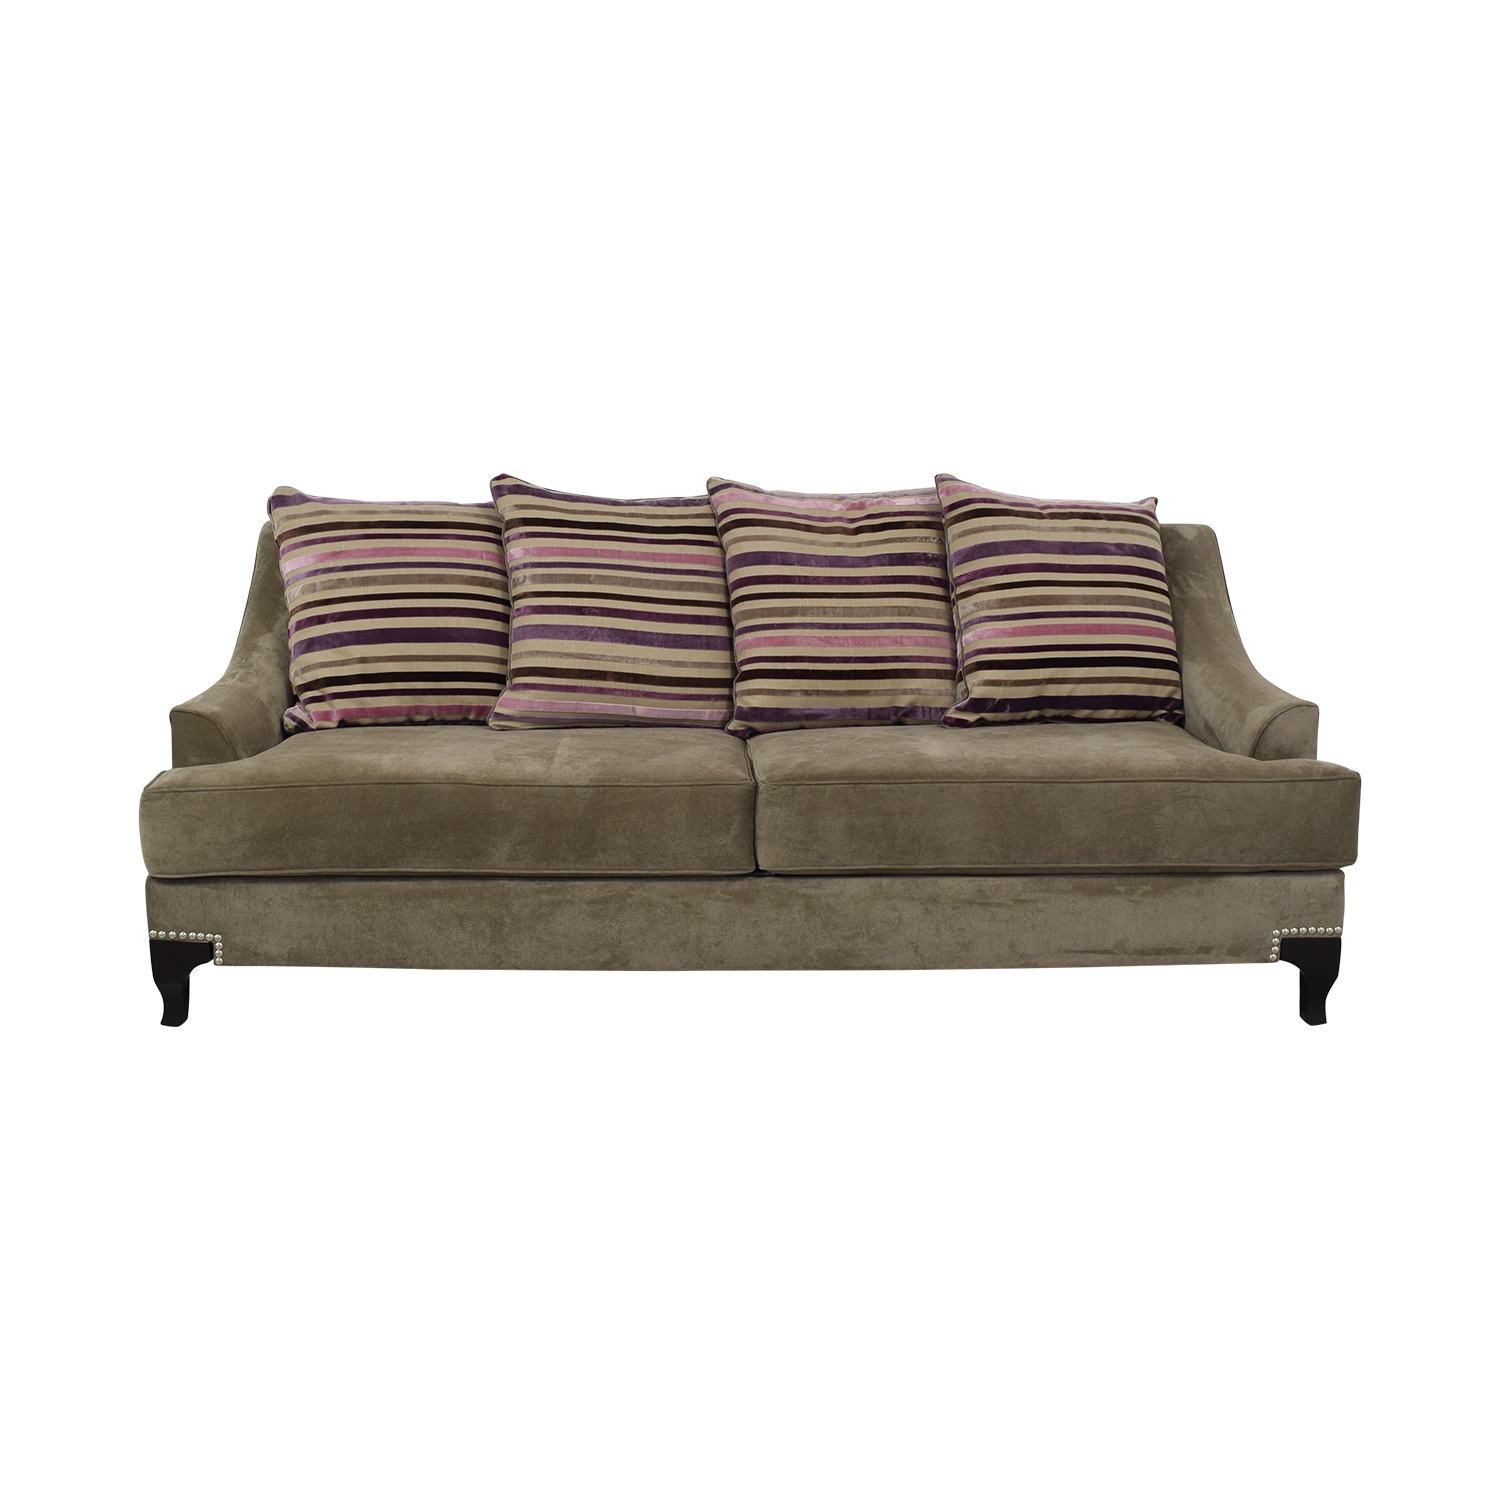 Furniture of America Furniture of America Classic Sofa used